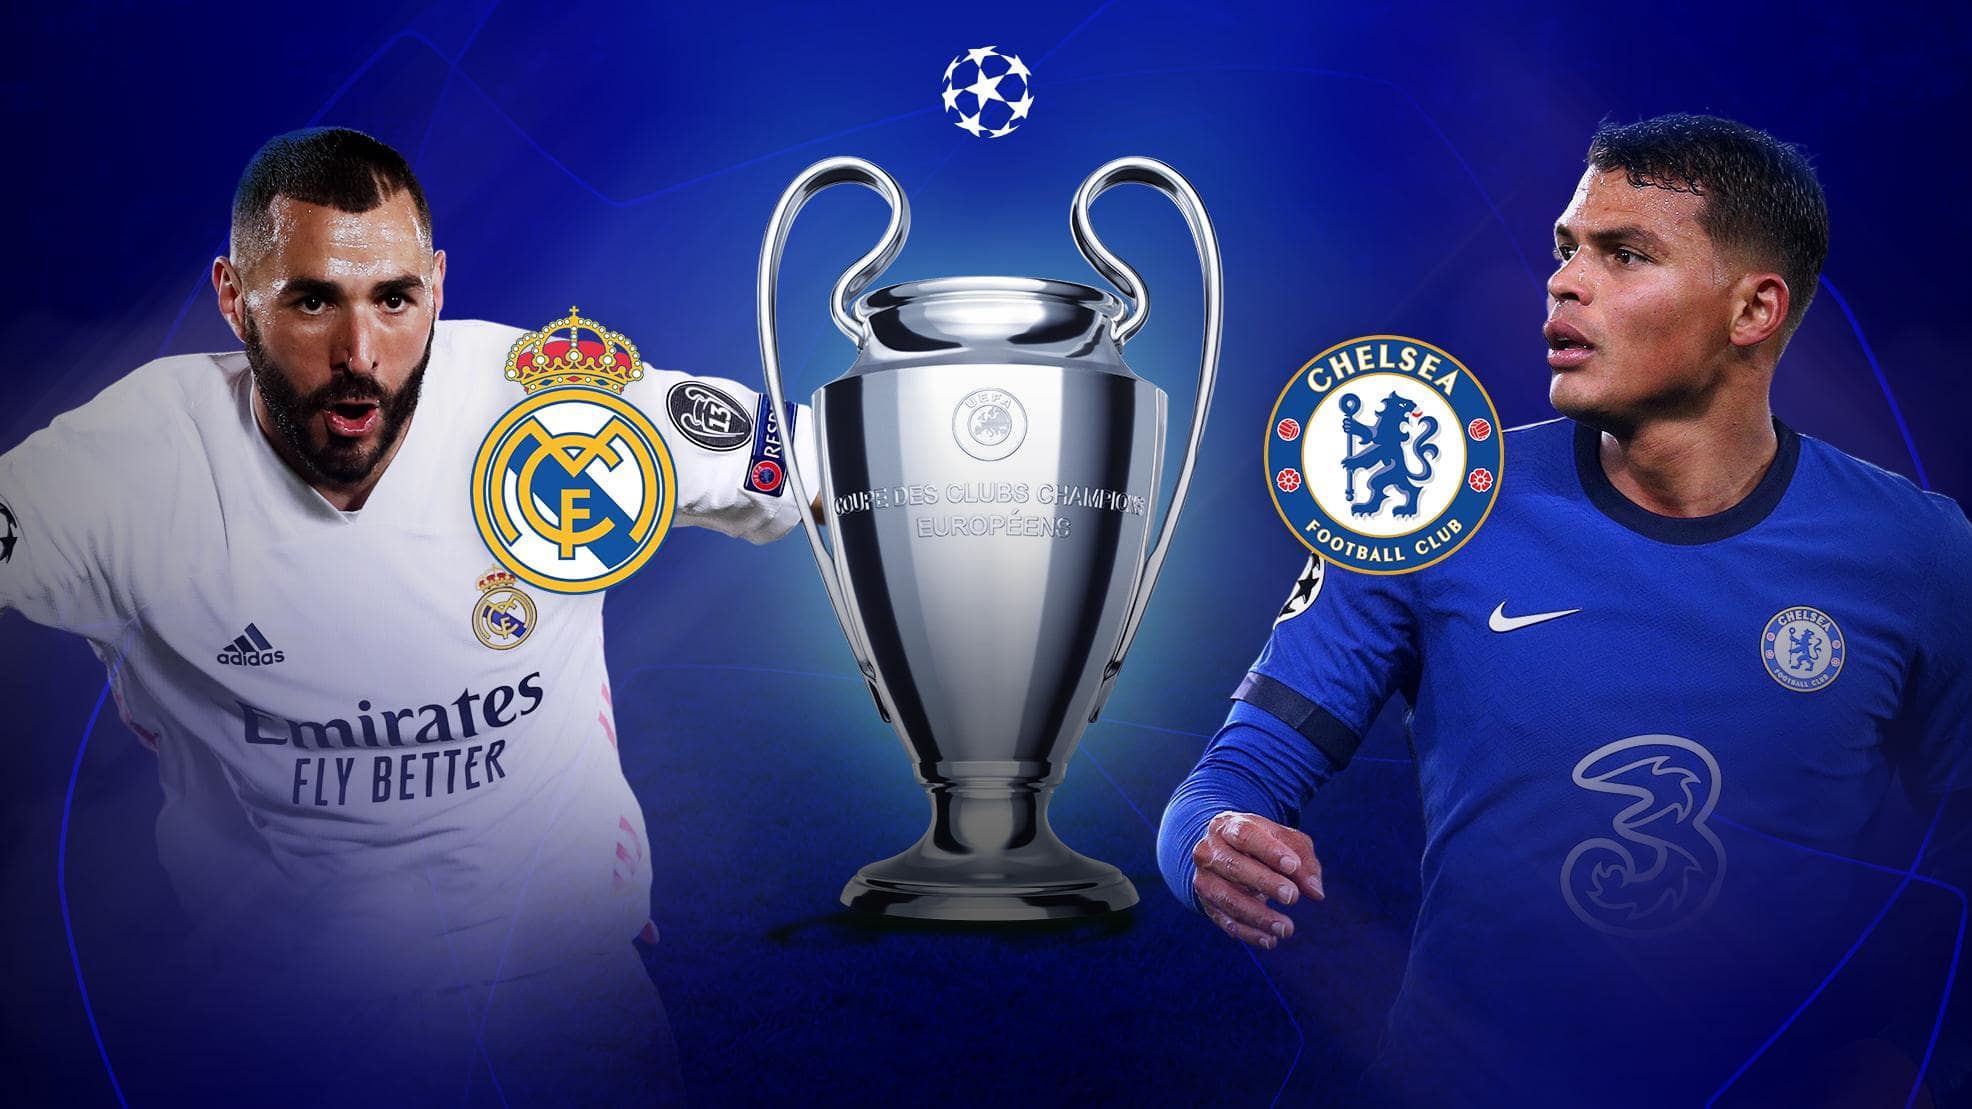 Chelsea vs Real Madrid lineup and prediction